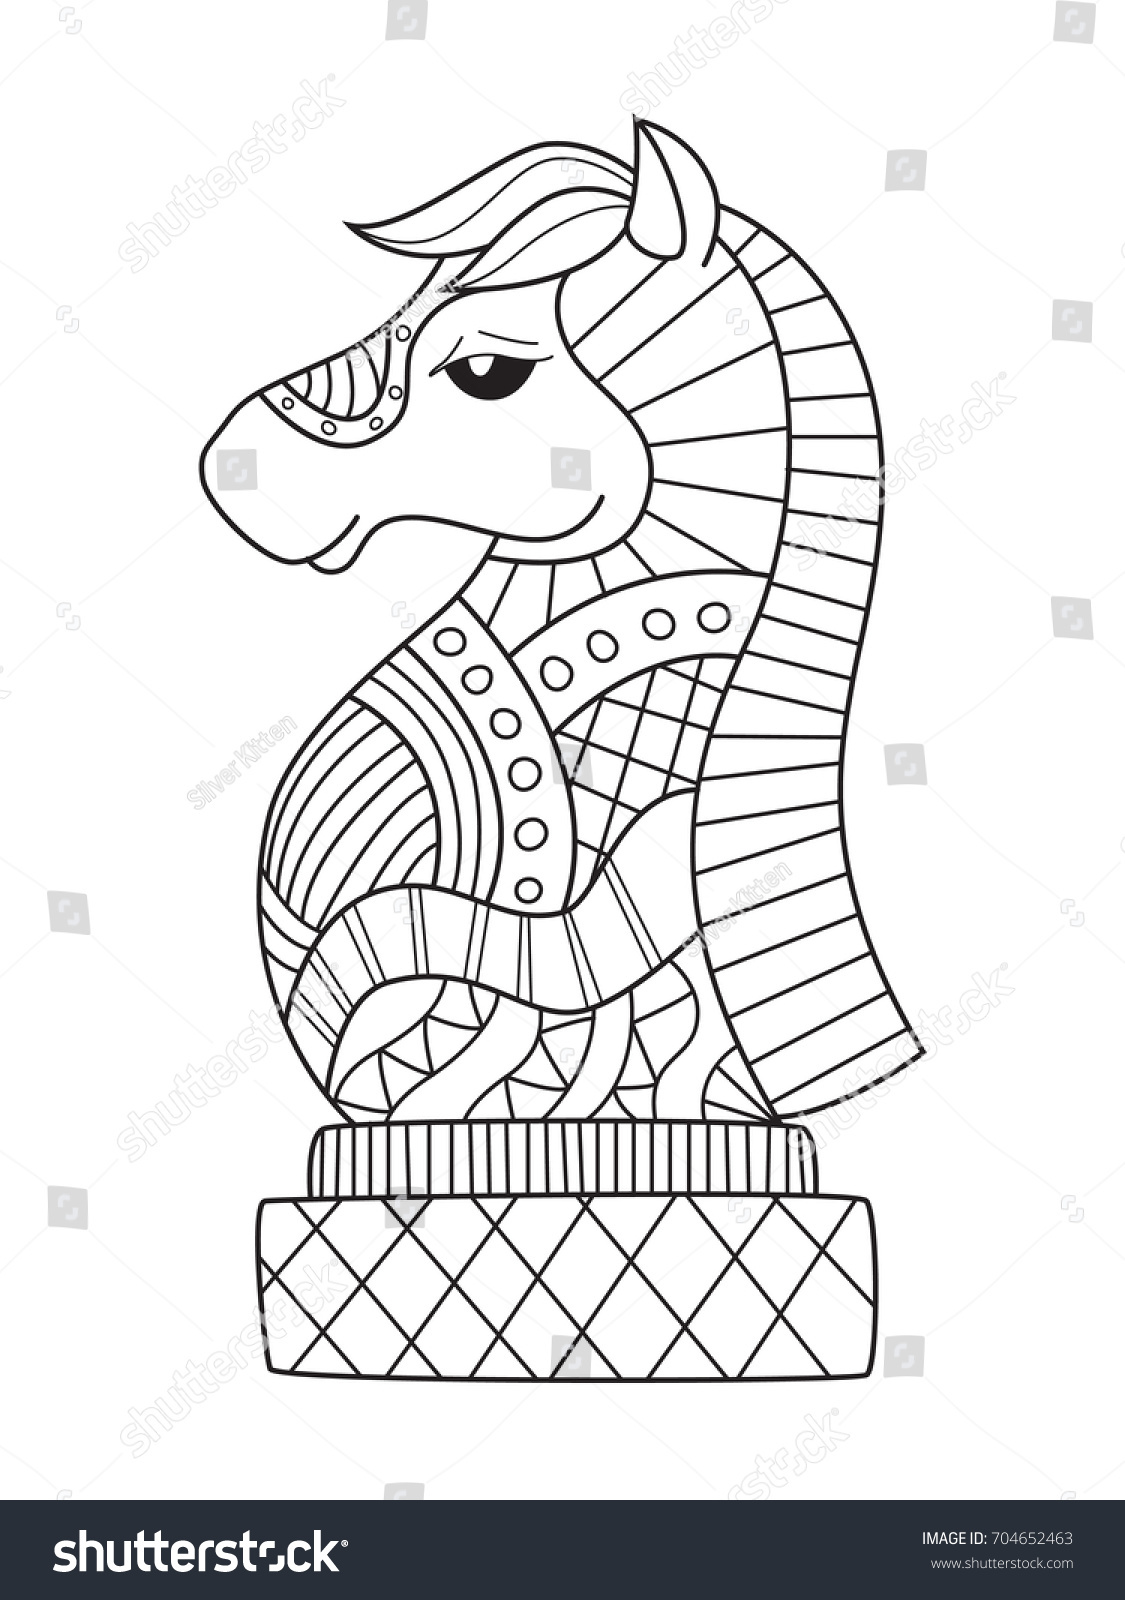 stock vector outlined doodle anti stress coloring book page chess knight for adults and children